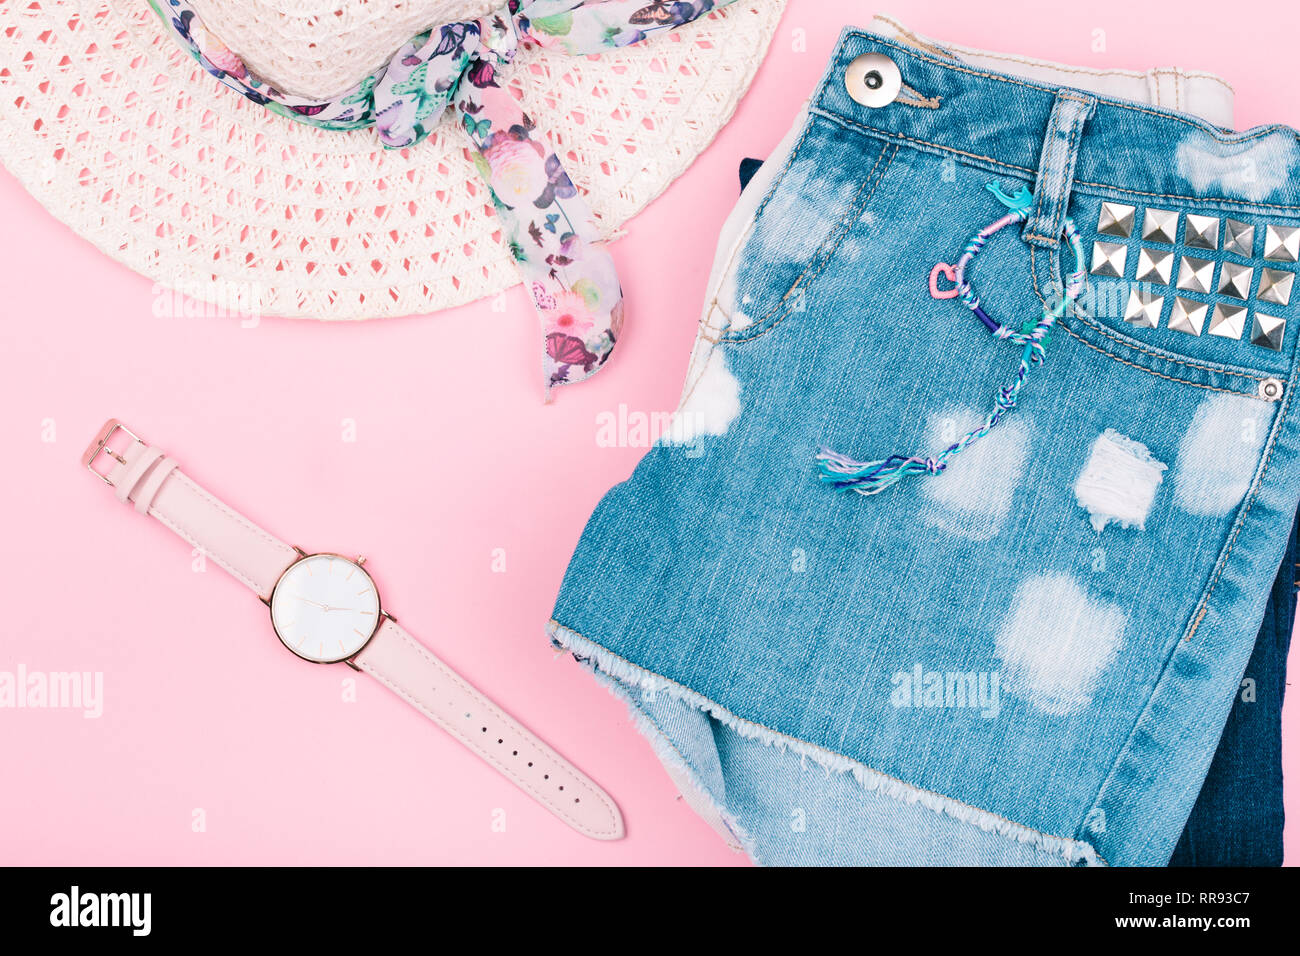 5da58ee90 Female girly clothes, blue jeans shorts, hat, watch on pink background